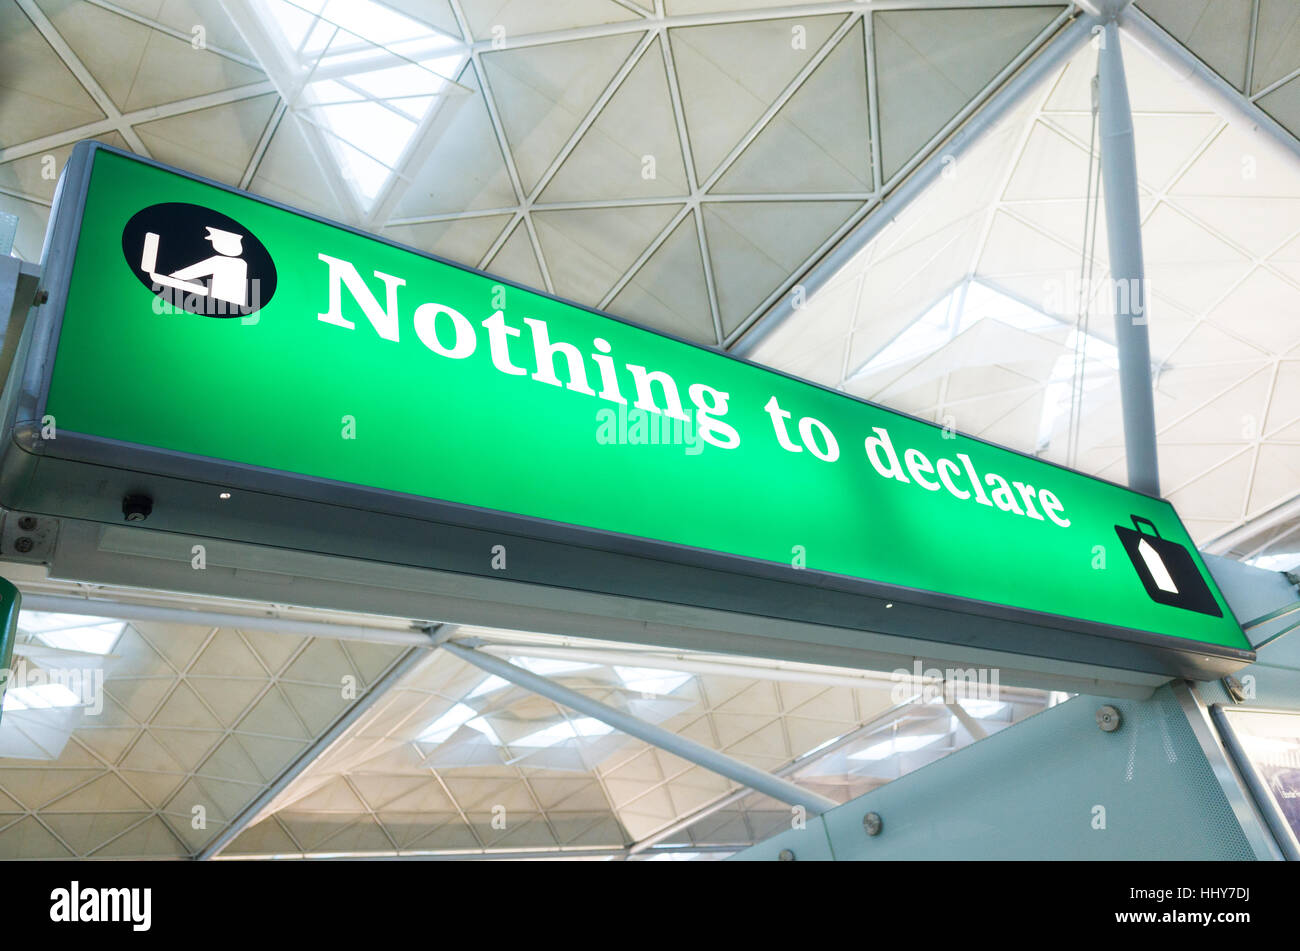 Nothing to declare customs channel at Stansted Airport, England, UK - Stock Image